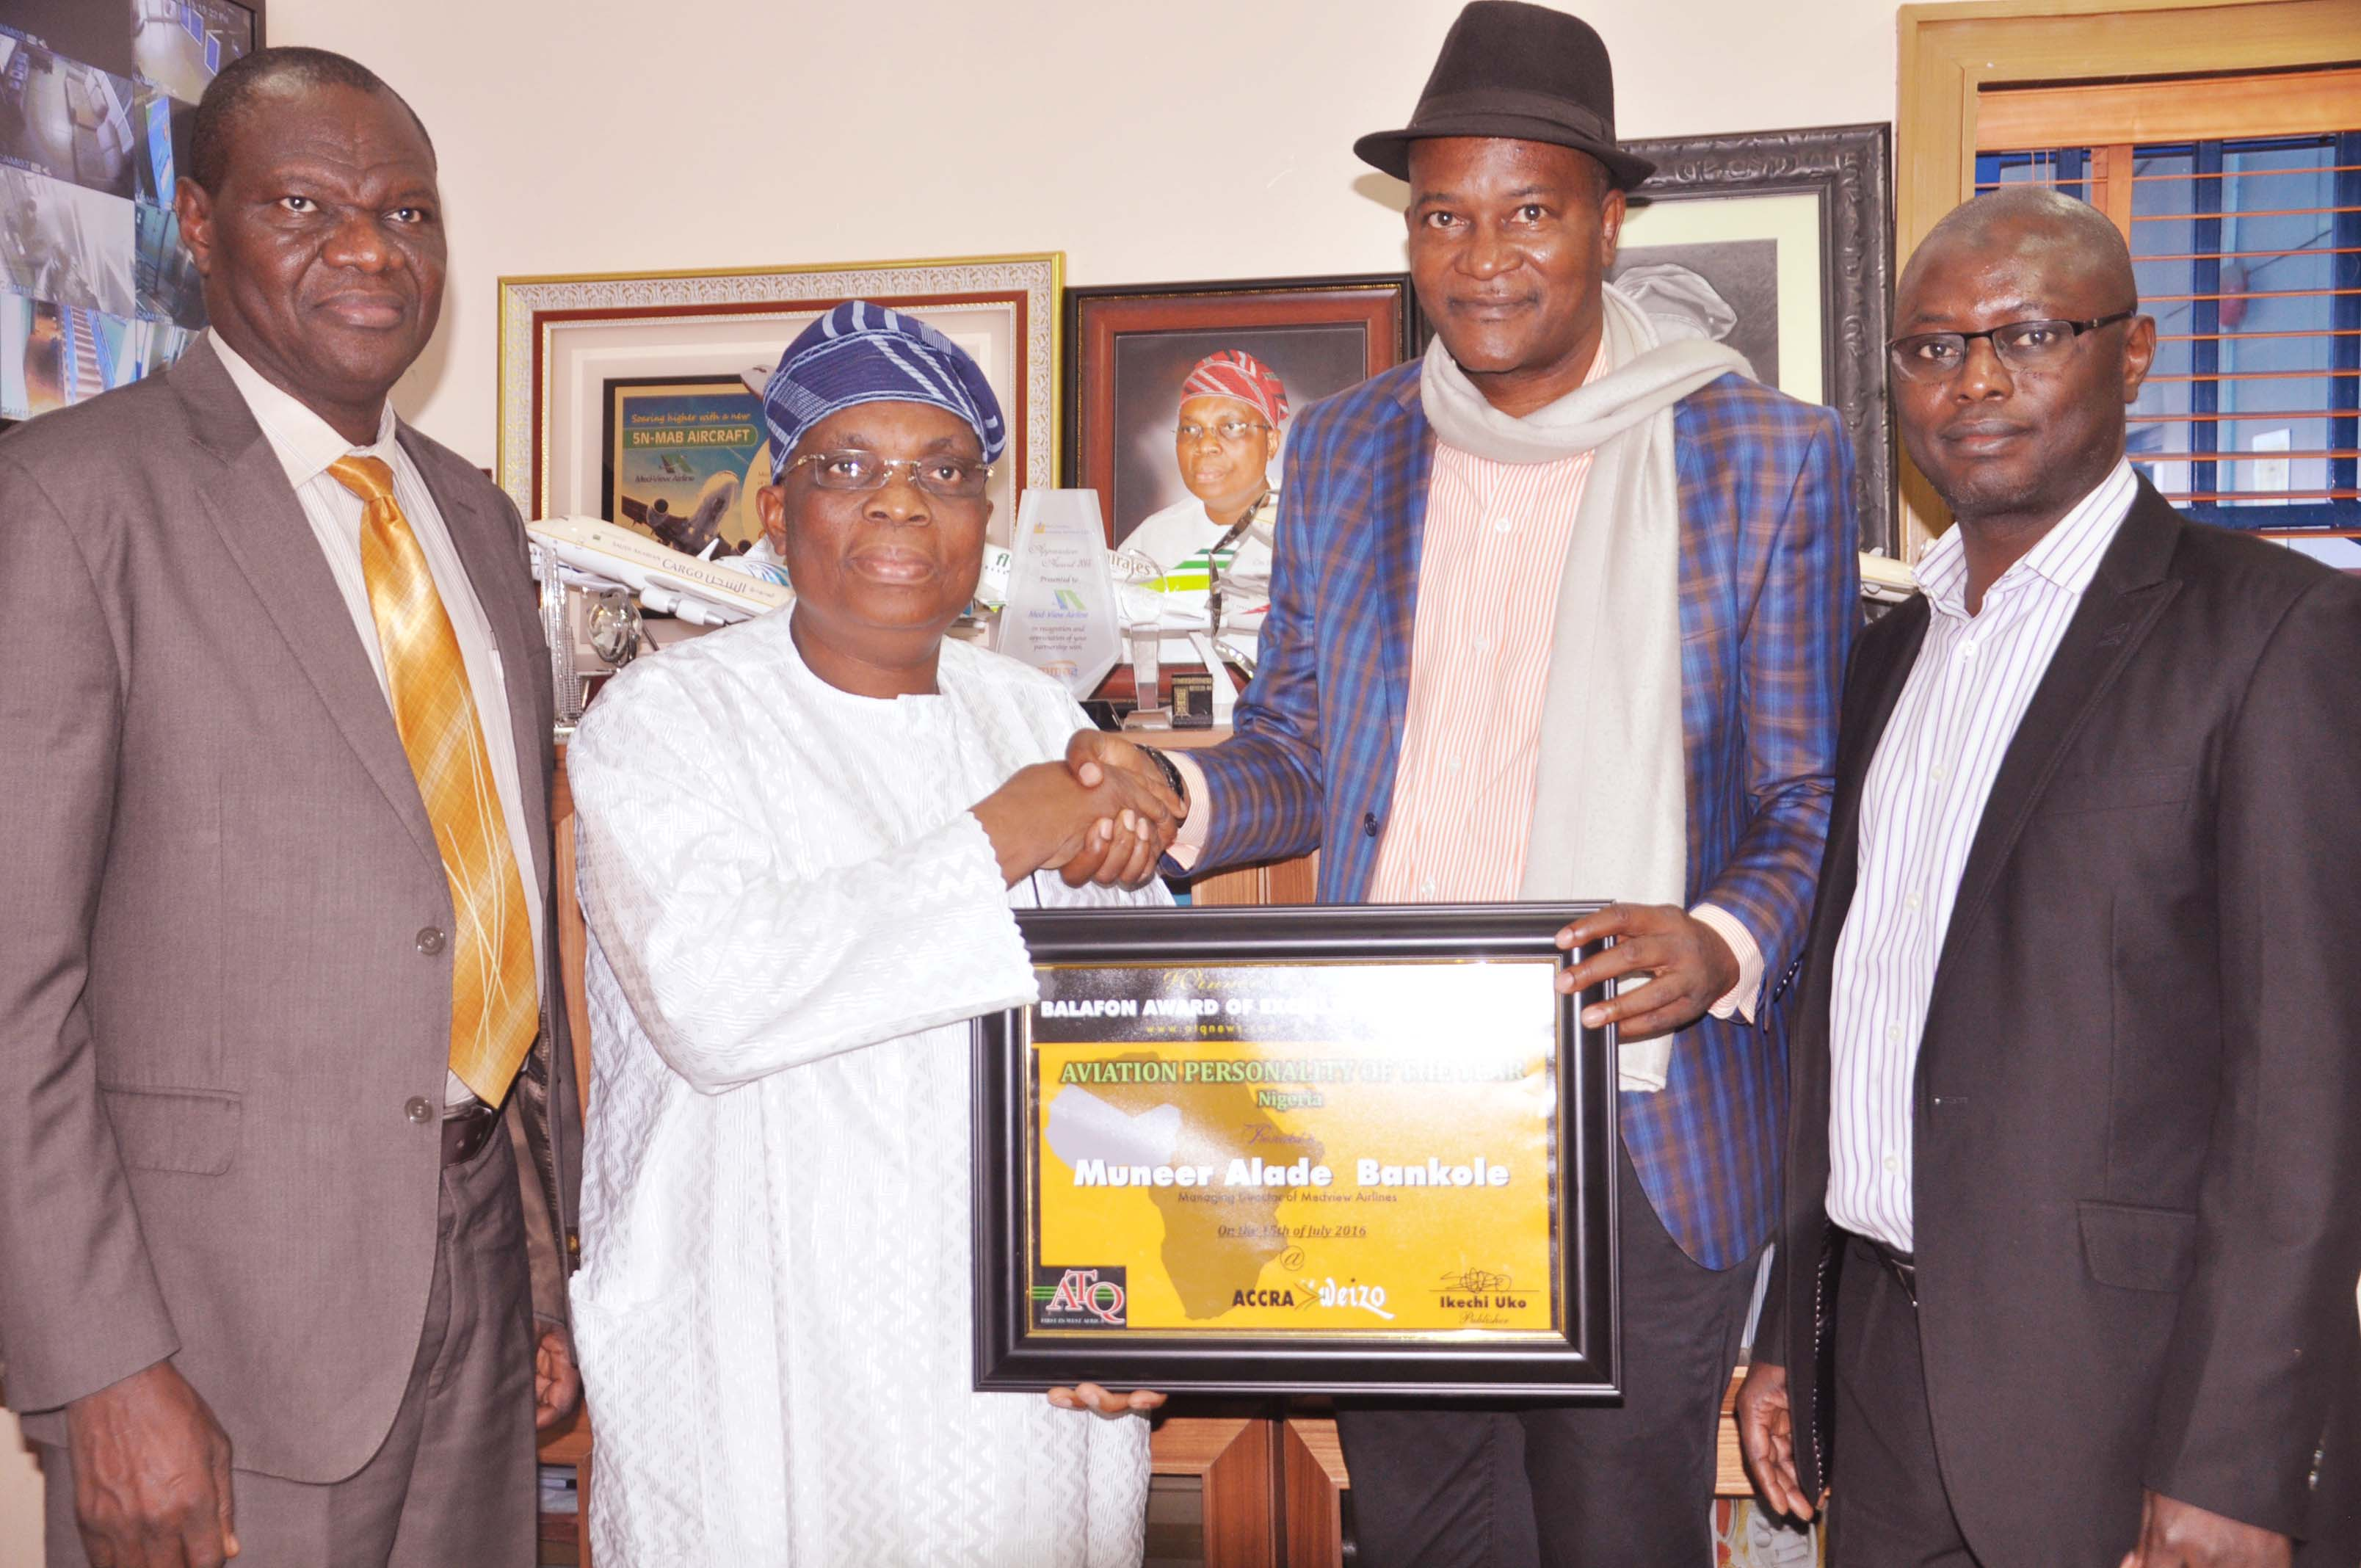 """Managing Director/Chief Executive, Med-View Airlines, Alhaji Muneer Bankole, (2nd left) receiving the """"Aviation Personality of the year 2016 Nigeria, award (Balafon Award) at the 2nd Weizo travel and tour conference and exhibition in Accra, Ghana from the Organiser, Mr. Ikechi Uko, (3rd left). Others from left, Executive Director, Technical, Med-View Airline, Engr. Lookman Animashaun and far right, Executive Director, Business Development, Med-View Airlines, Alhaji Isiaq Na'Allah."""